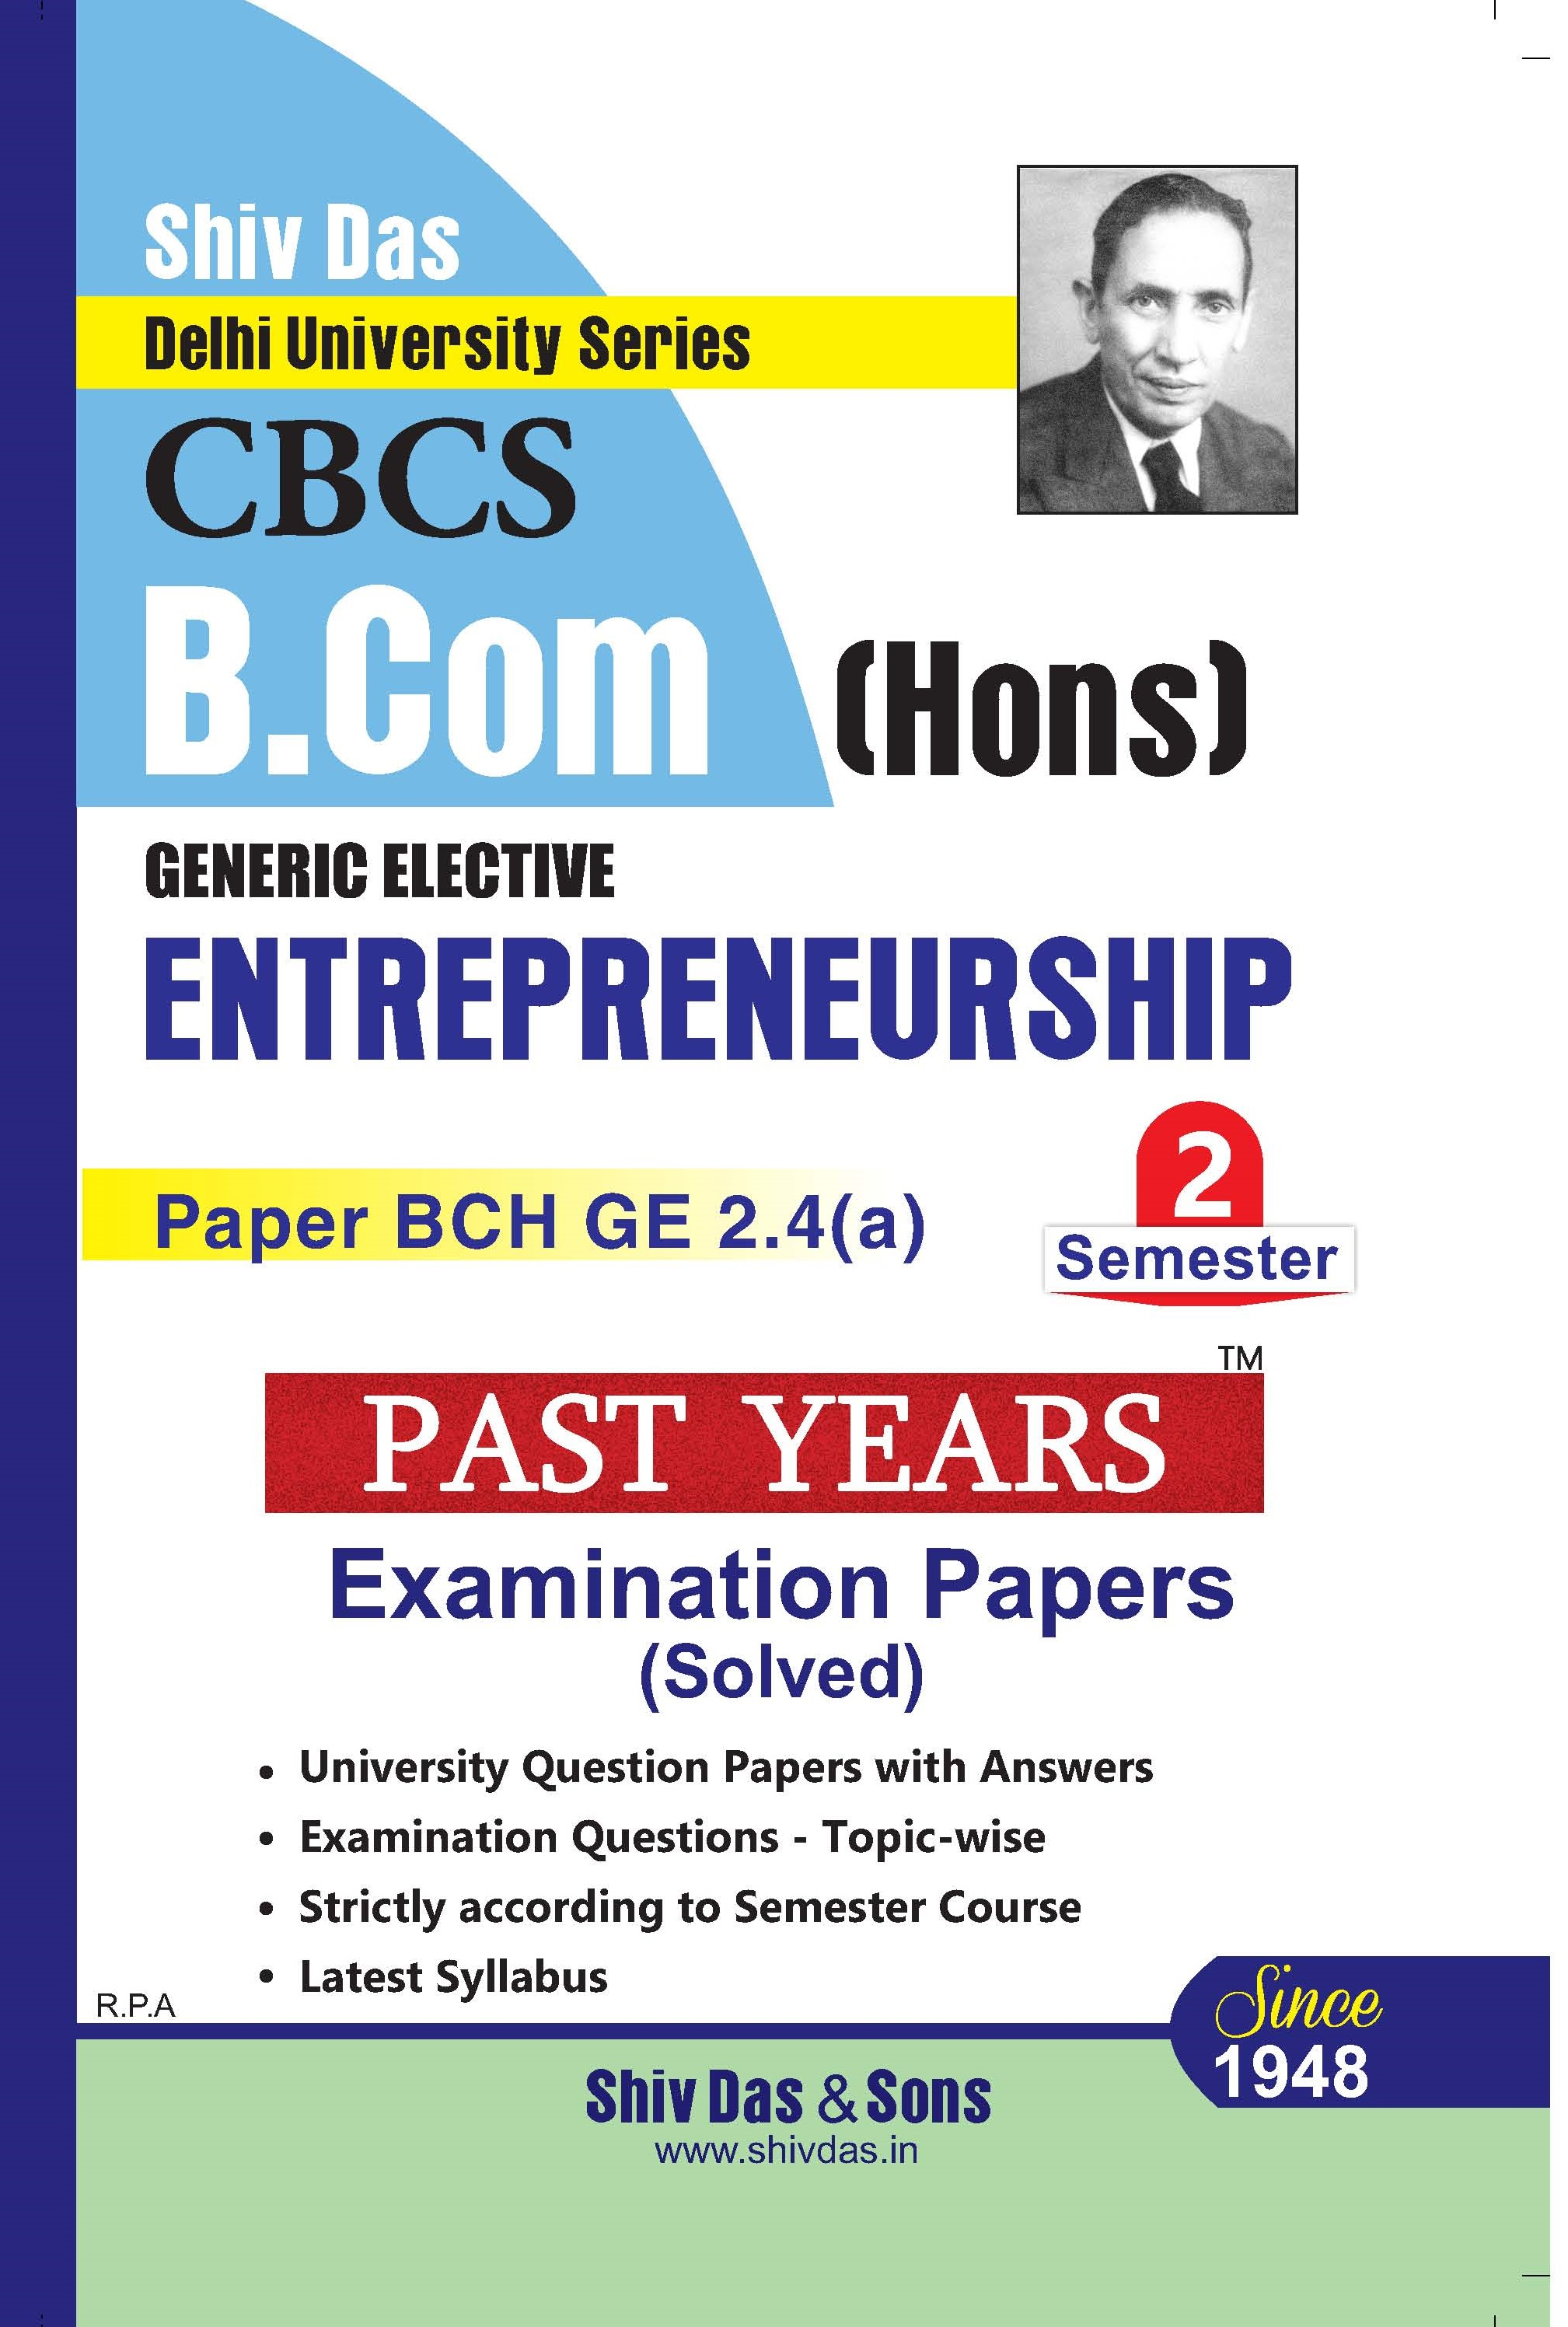 Entrepreneurship for B.Com Hons Semester 2 for Delhi University by Shiv Das